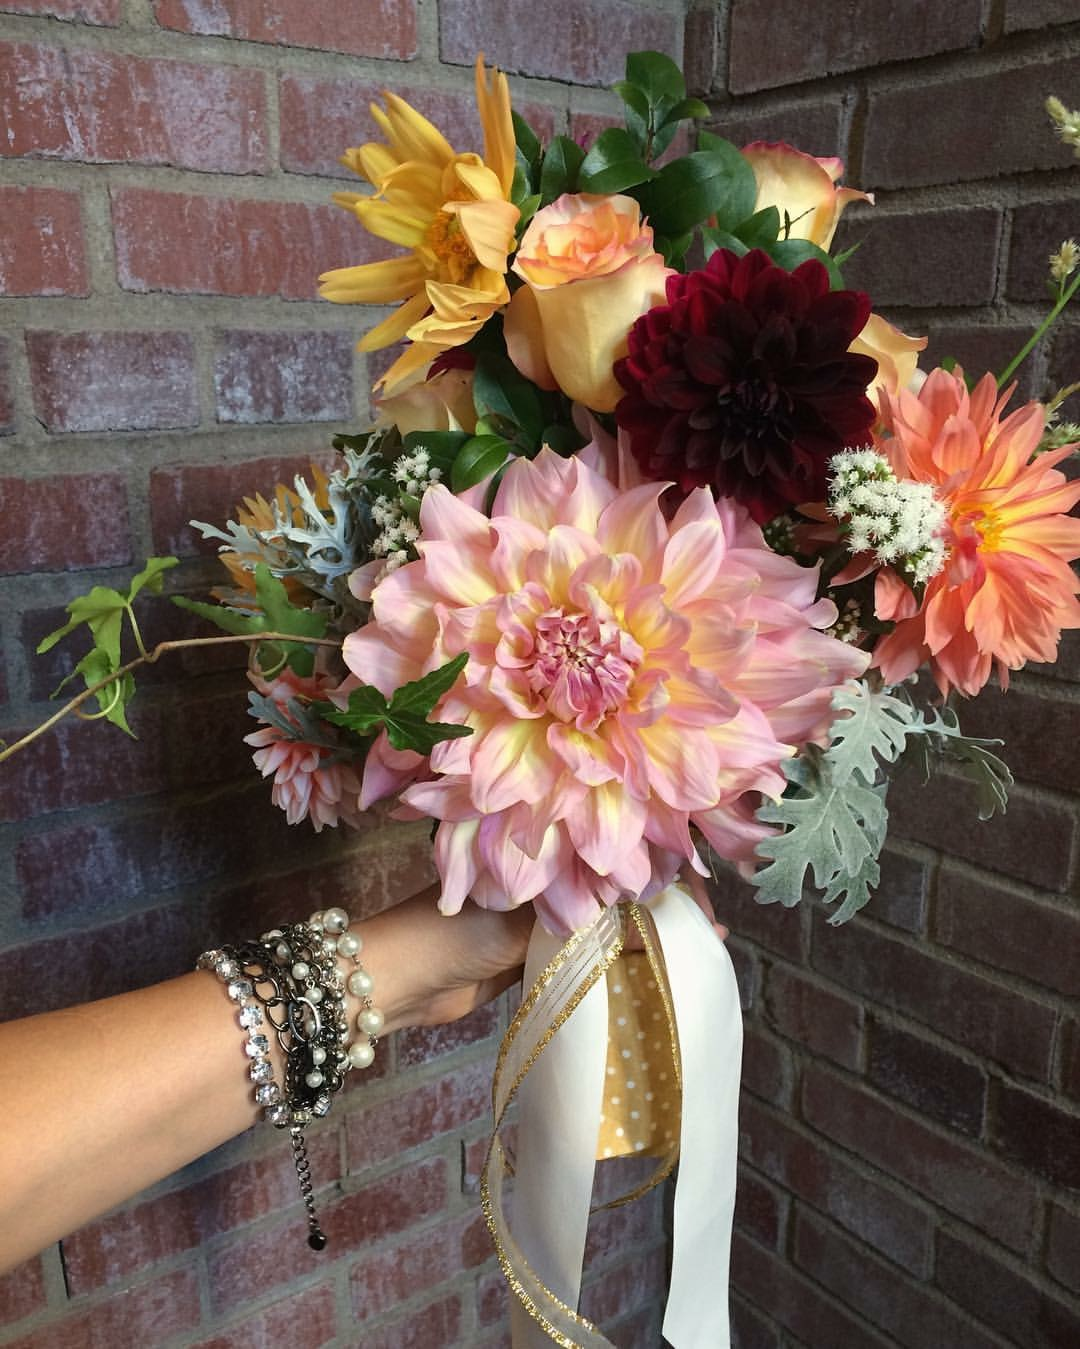 Bouquets_IMG_2170.JPG